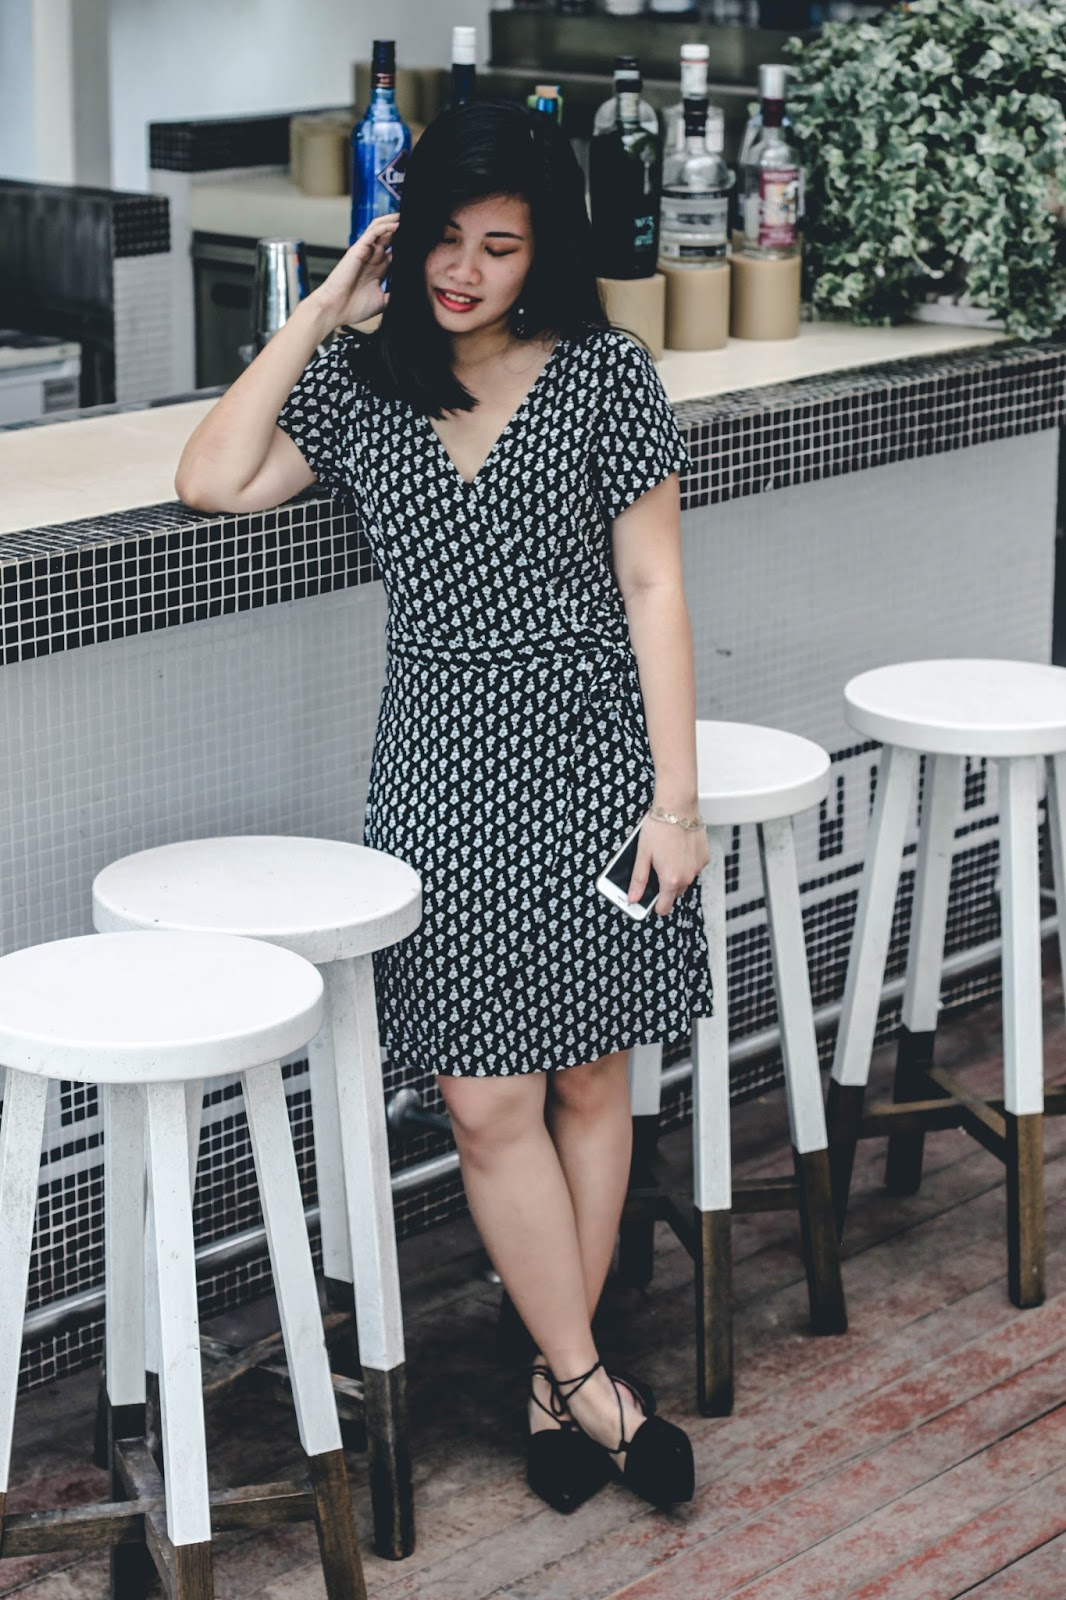 singapore blogger style fashion street photography stylexstyle bloglovin asia ootd outfit look book the white rabbit cafe singapore